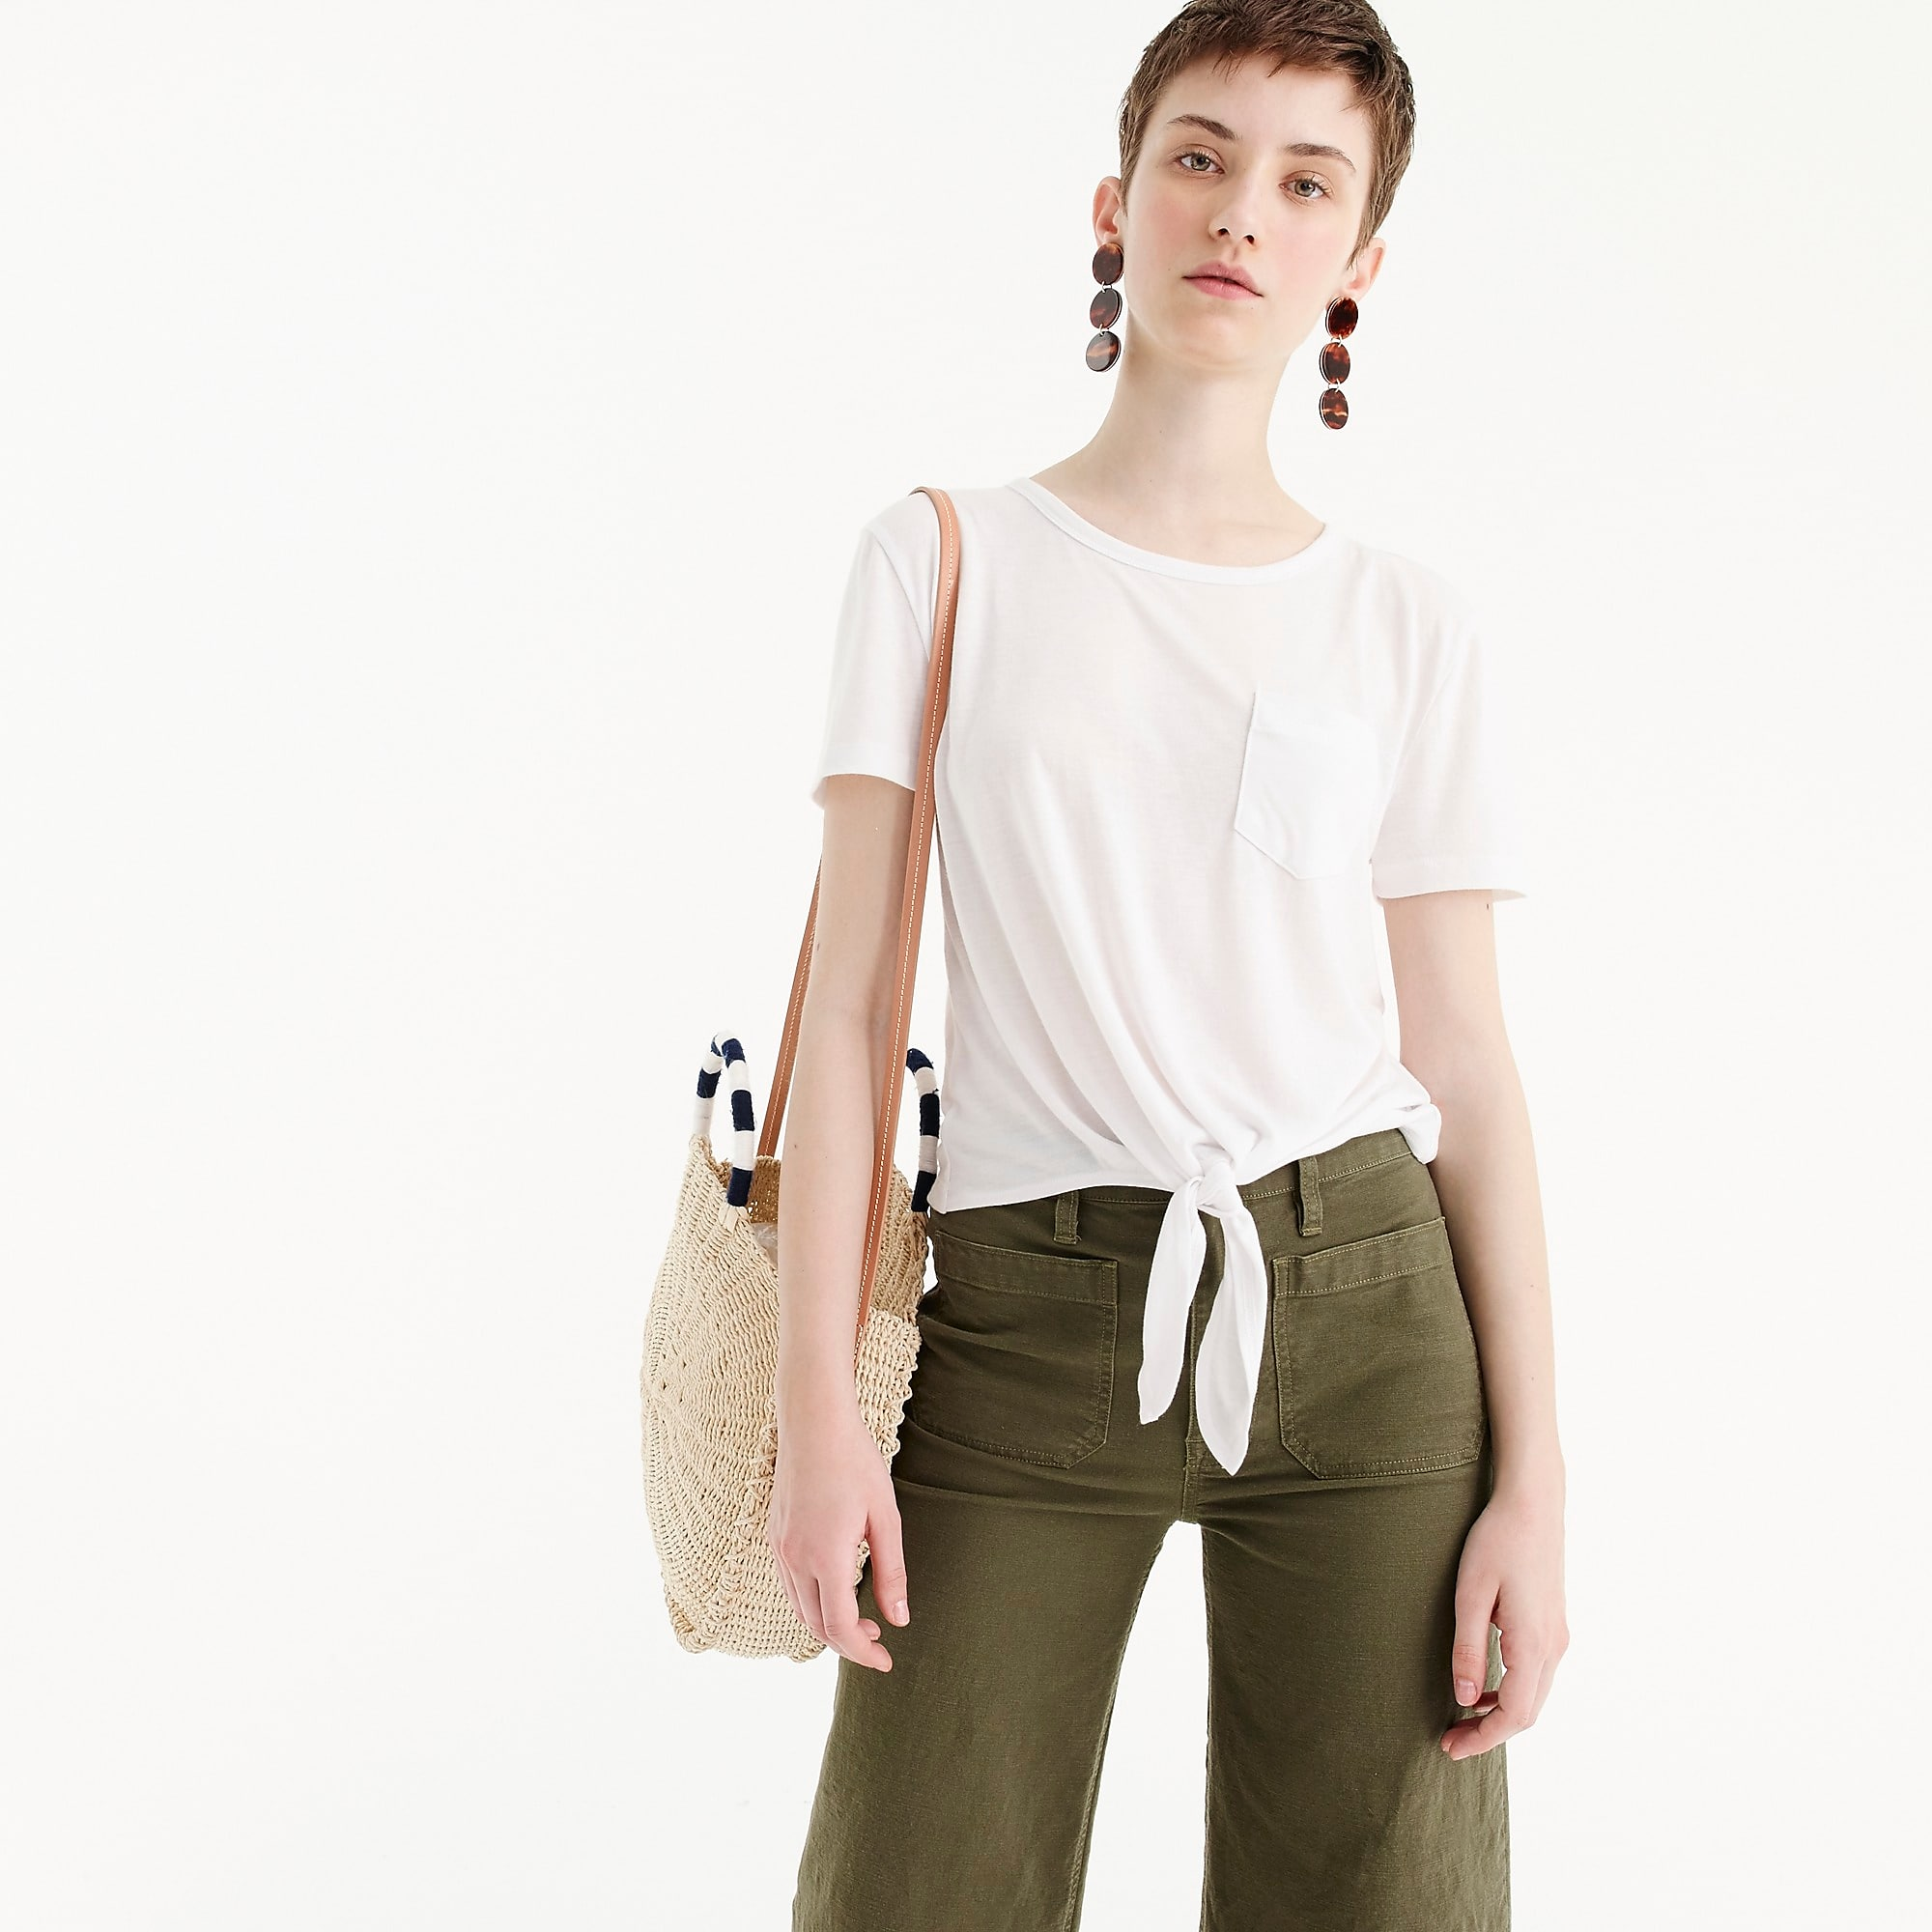 From Madewell.com